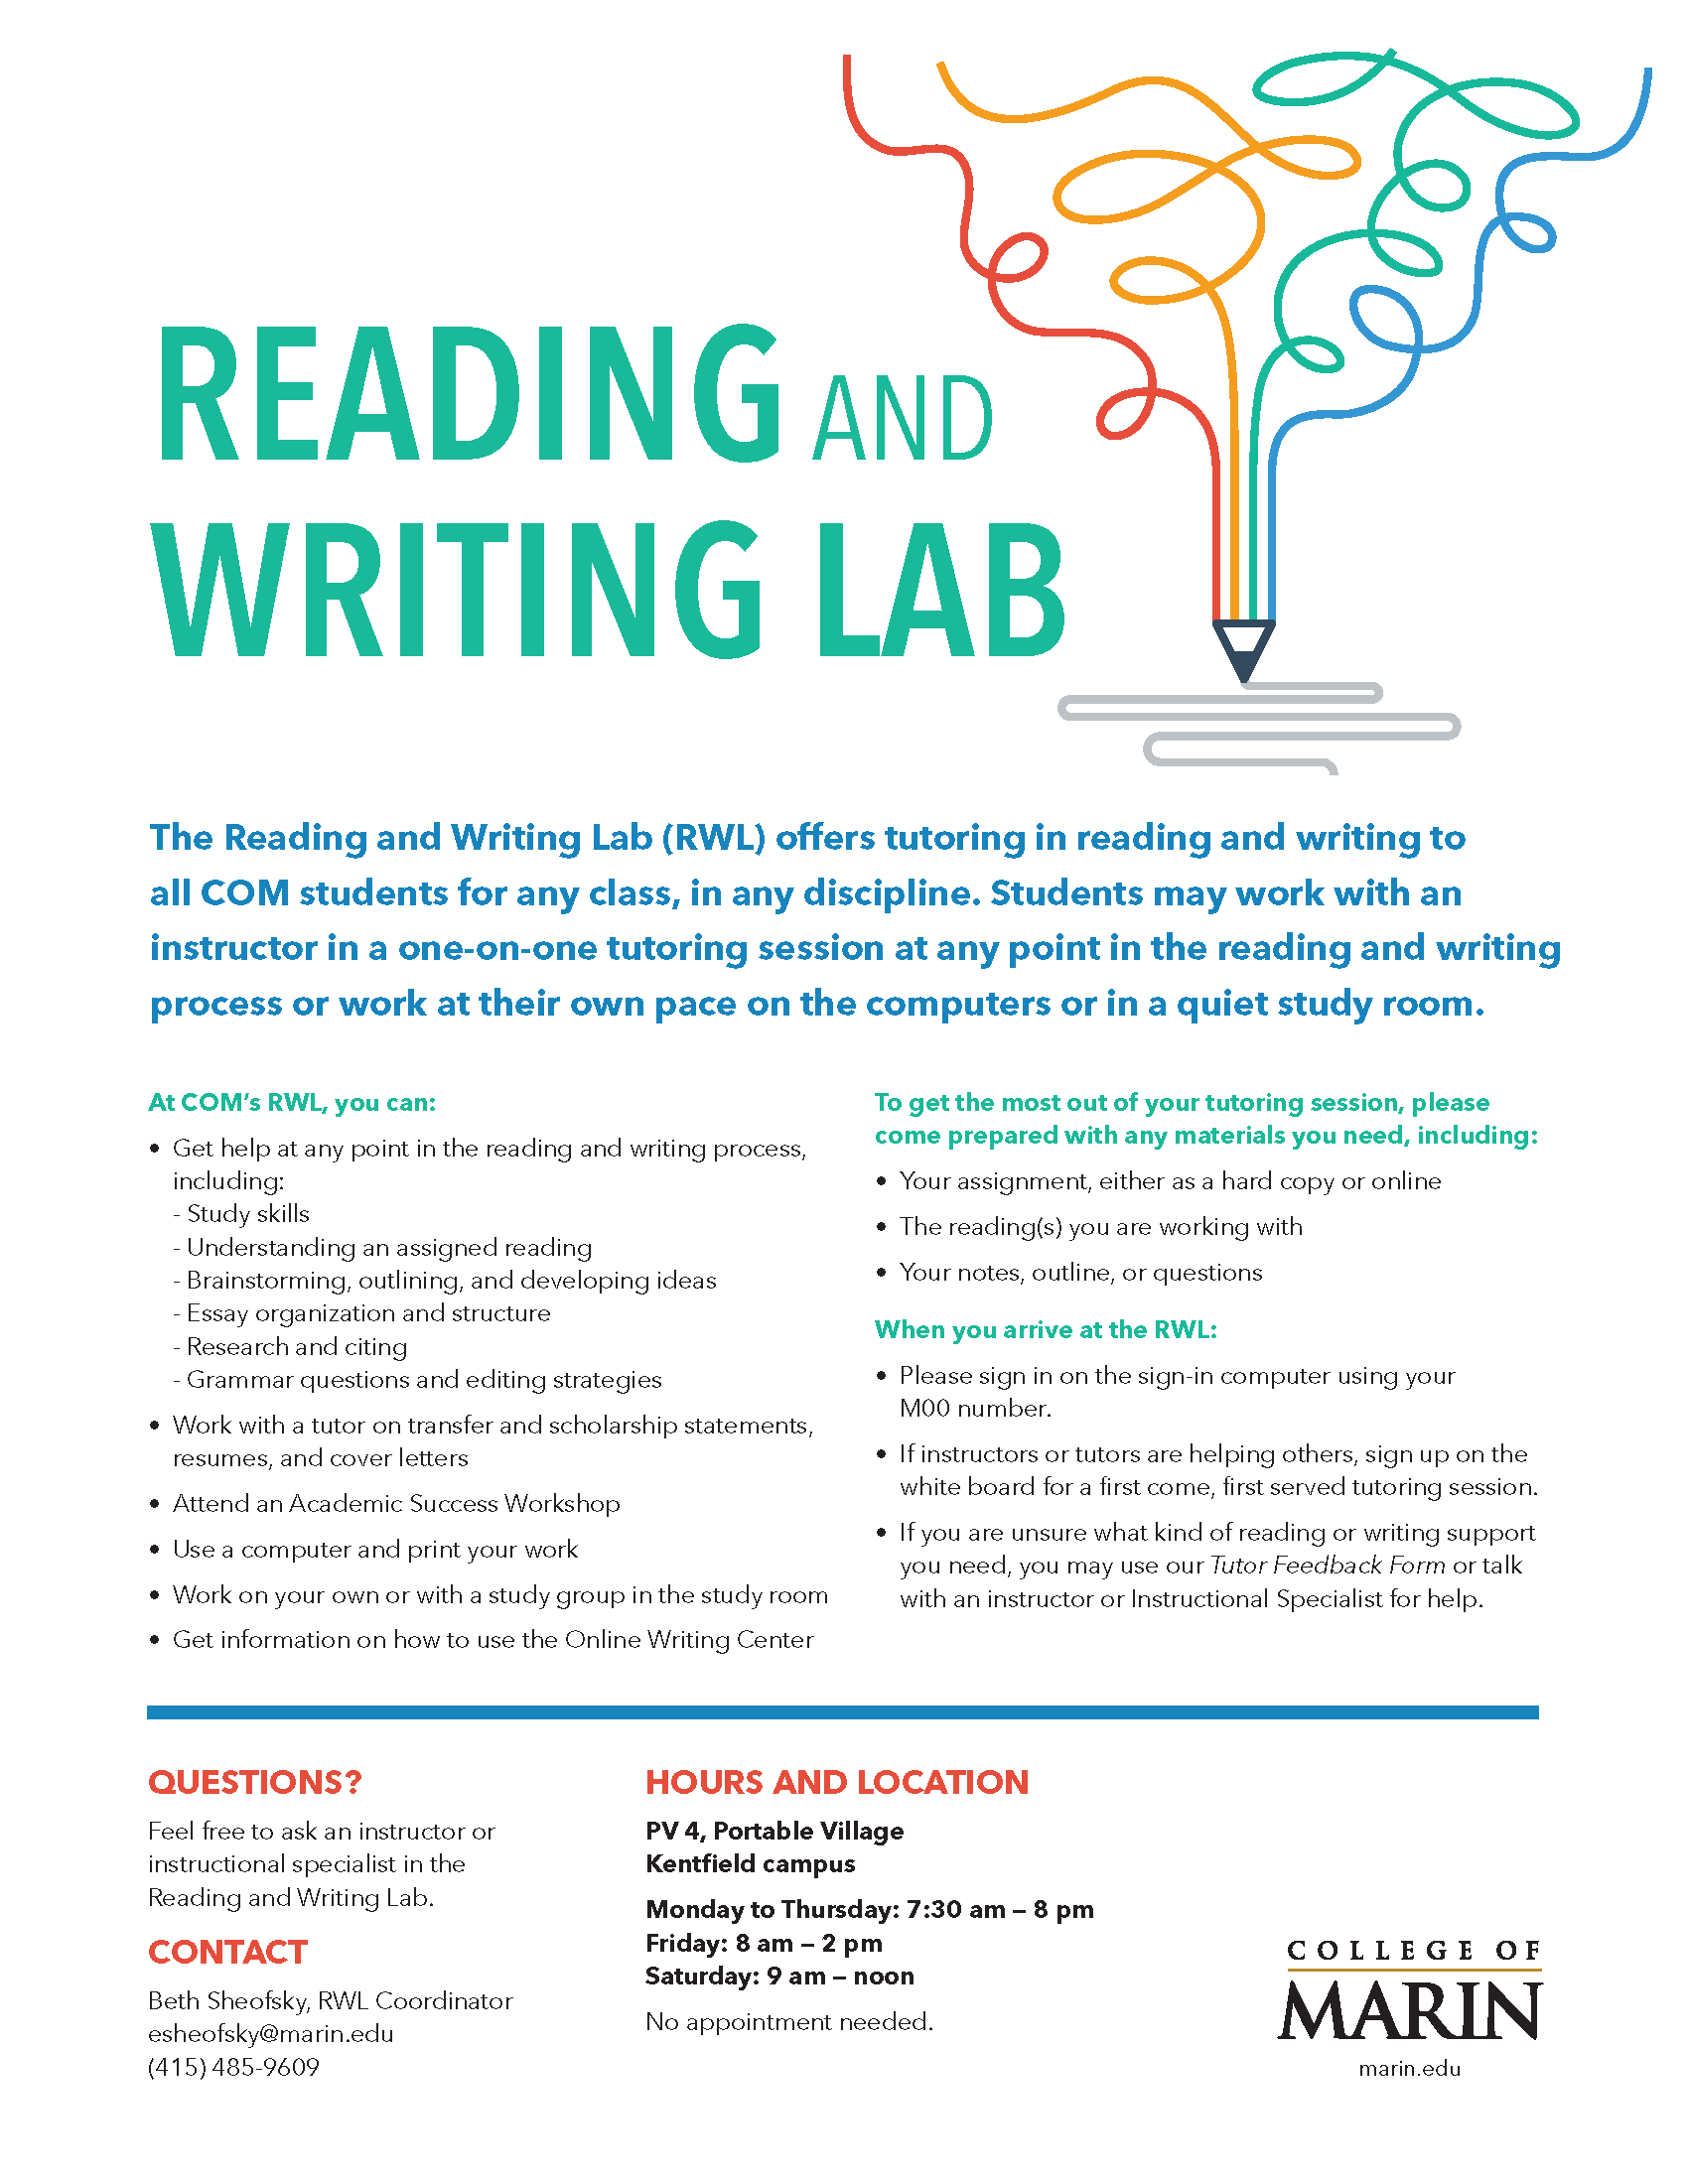 Reading and Writing Lab flyer